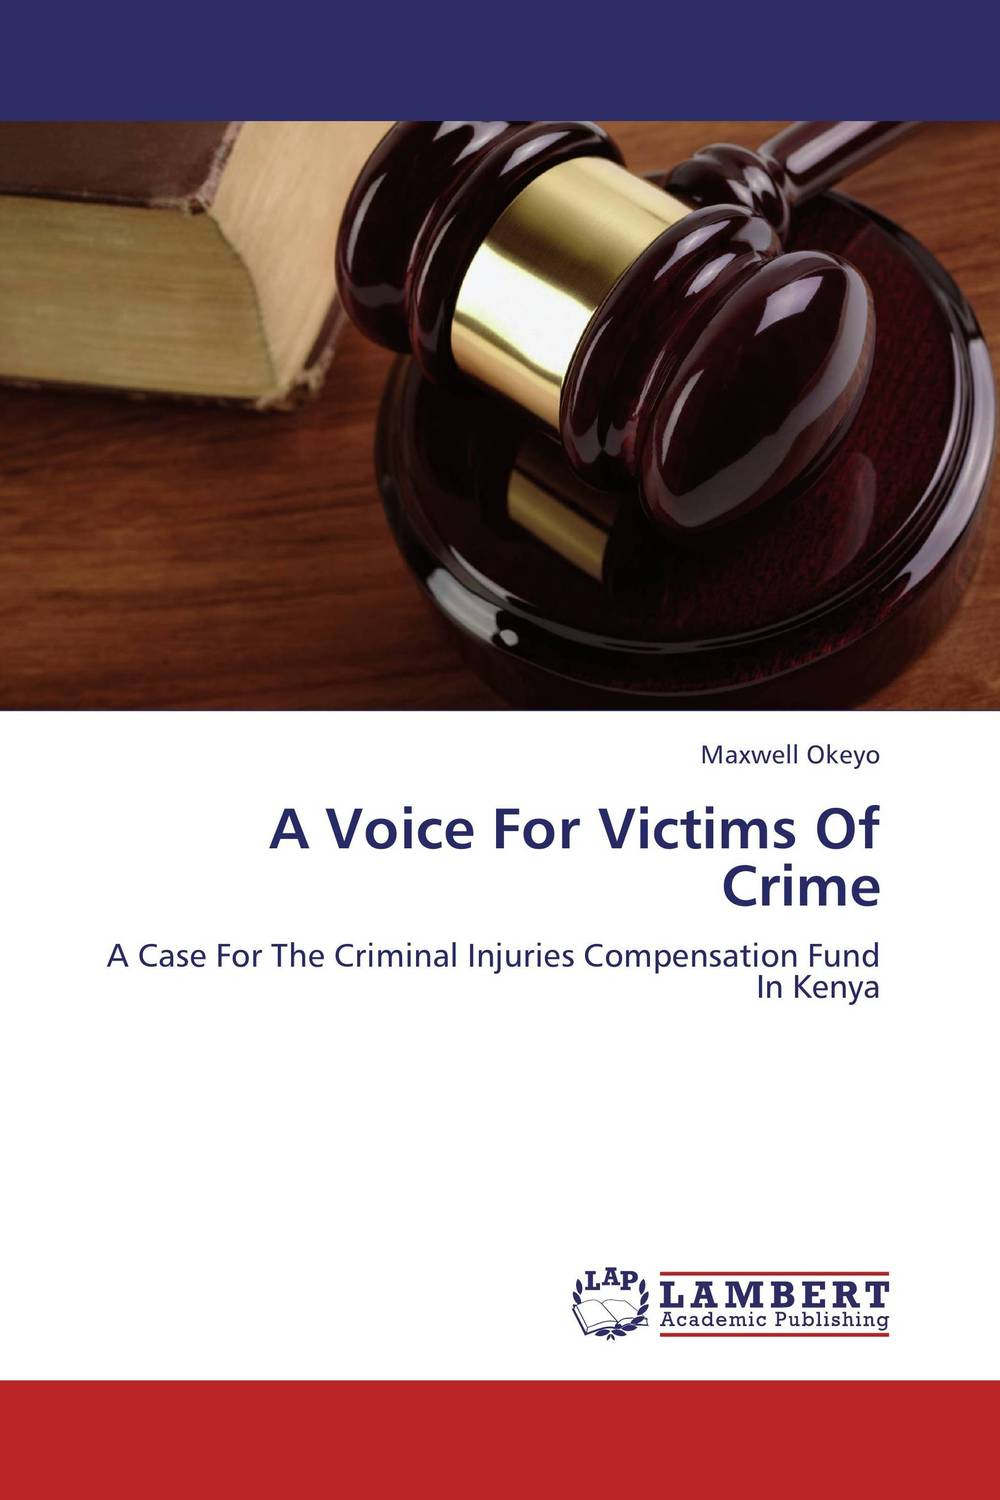 A Voice For Victims Of Crime